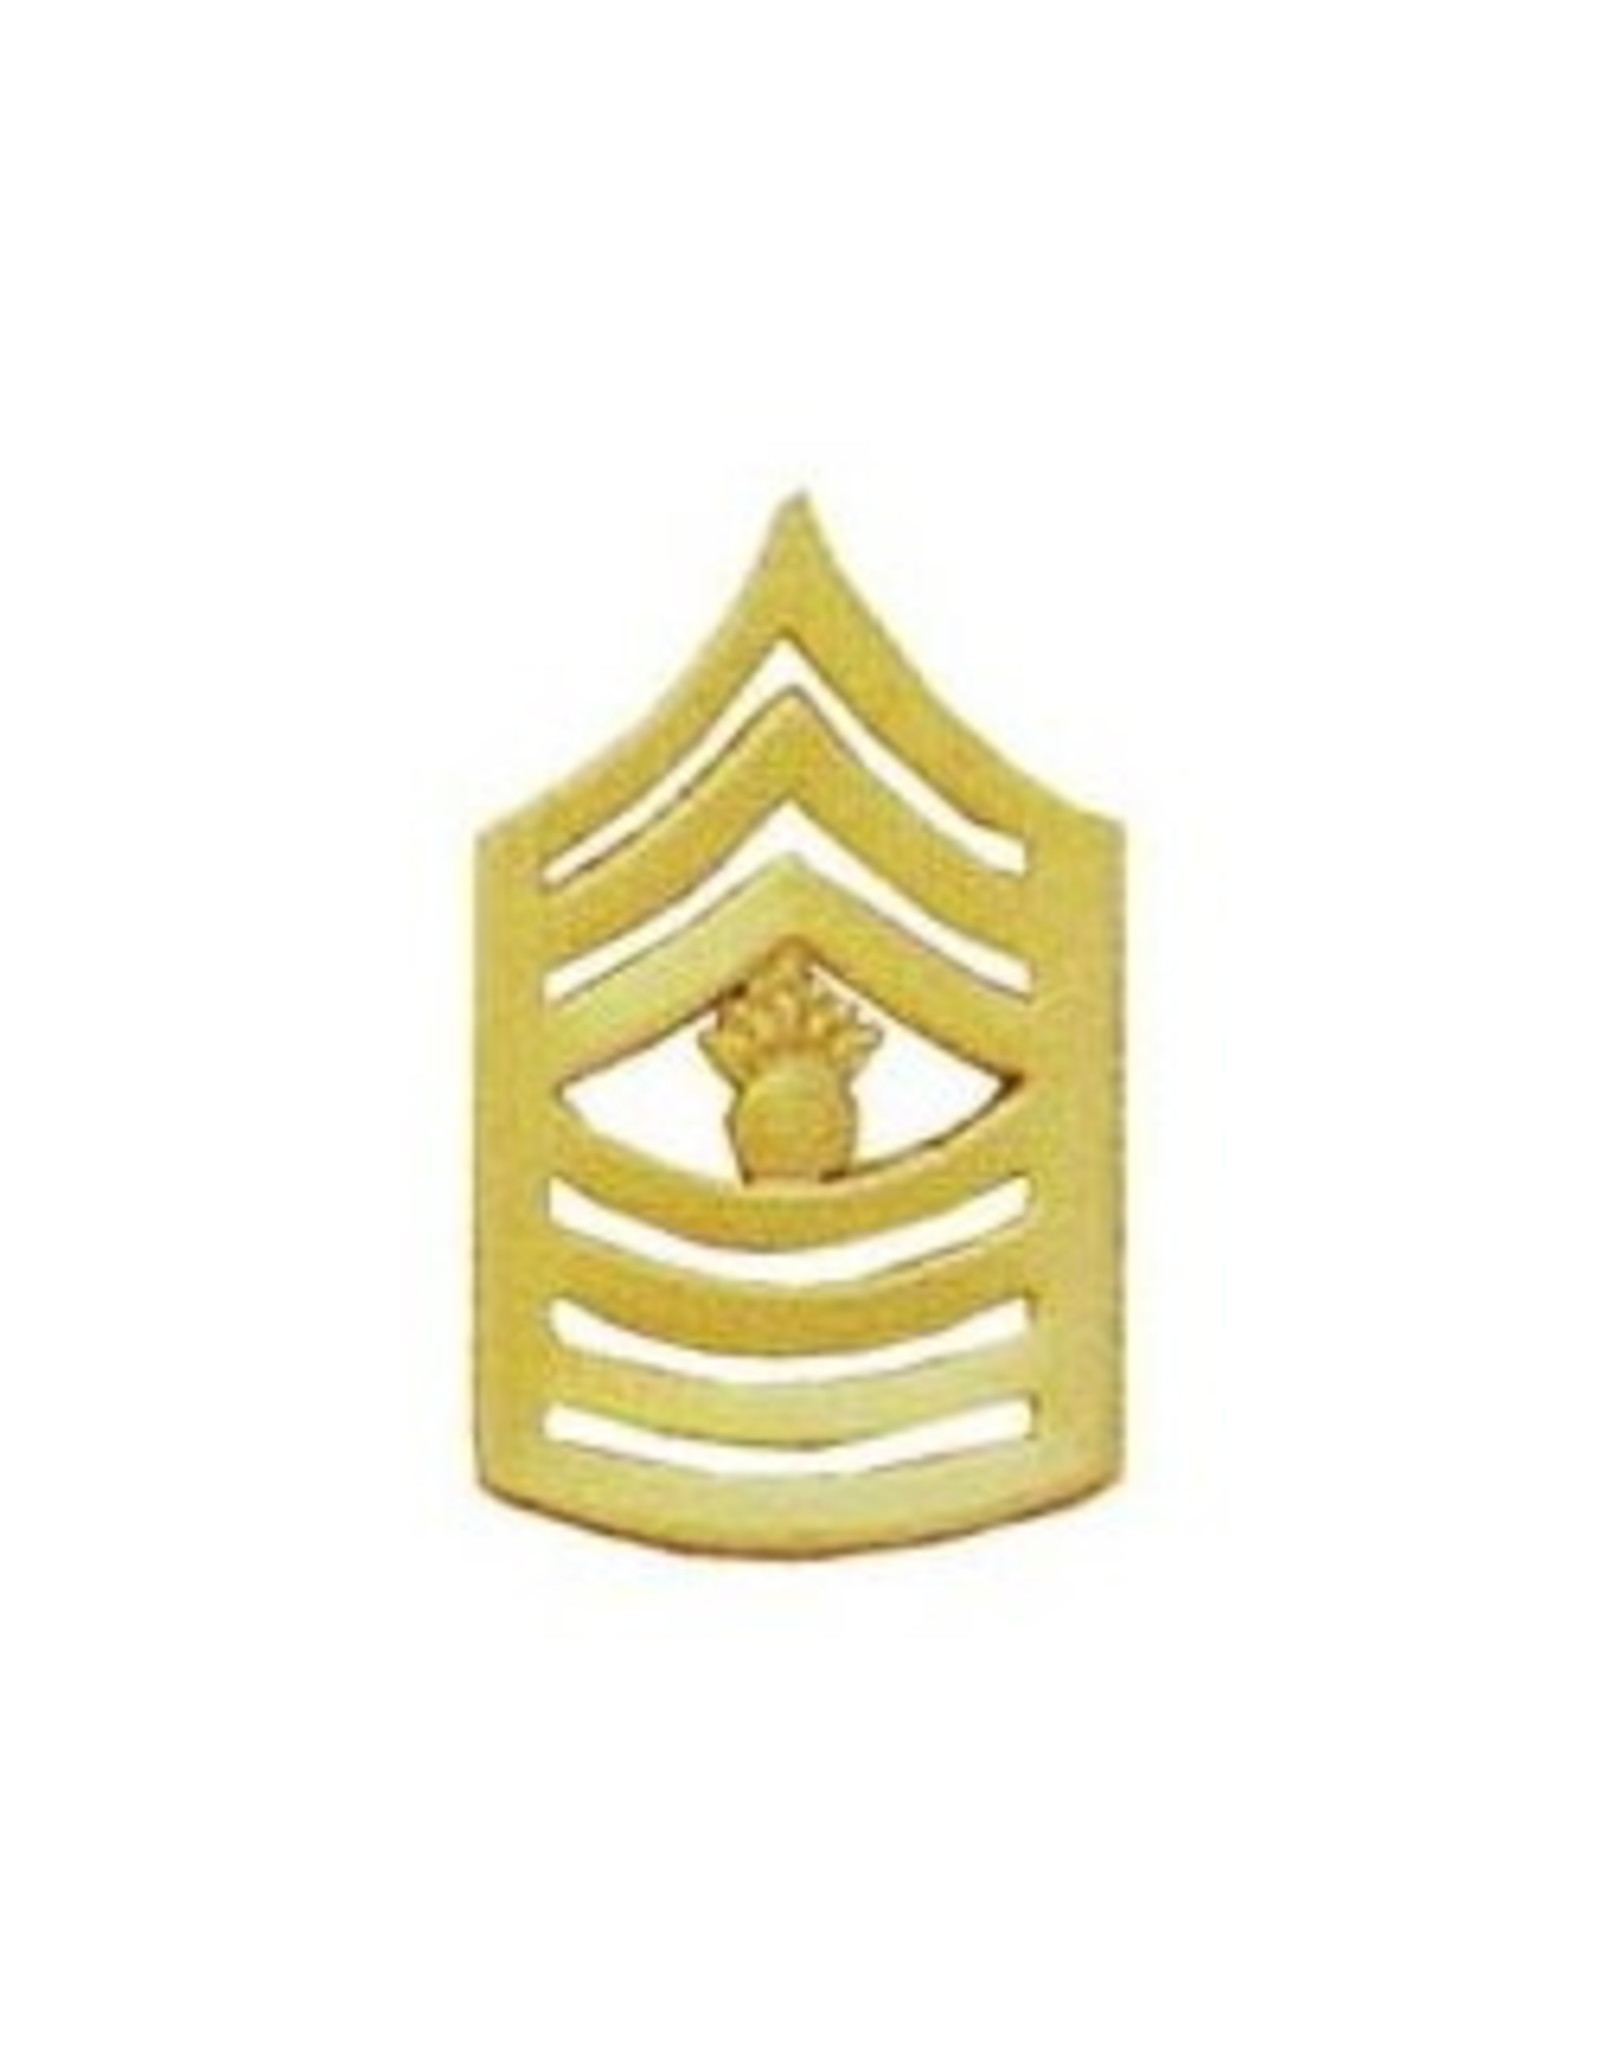 MidMil Marine Corps Master Gunnery Sergeant (E-9) Gold Rank Pin 1-1/2""